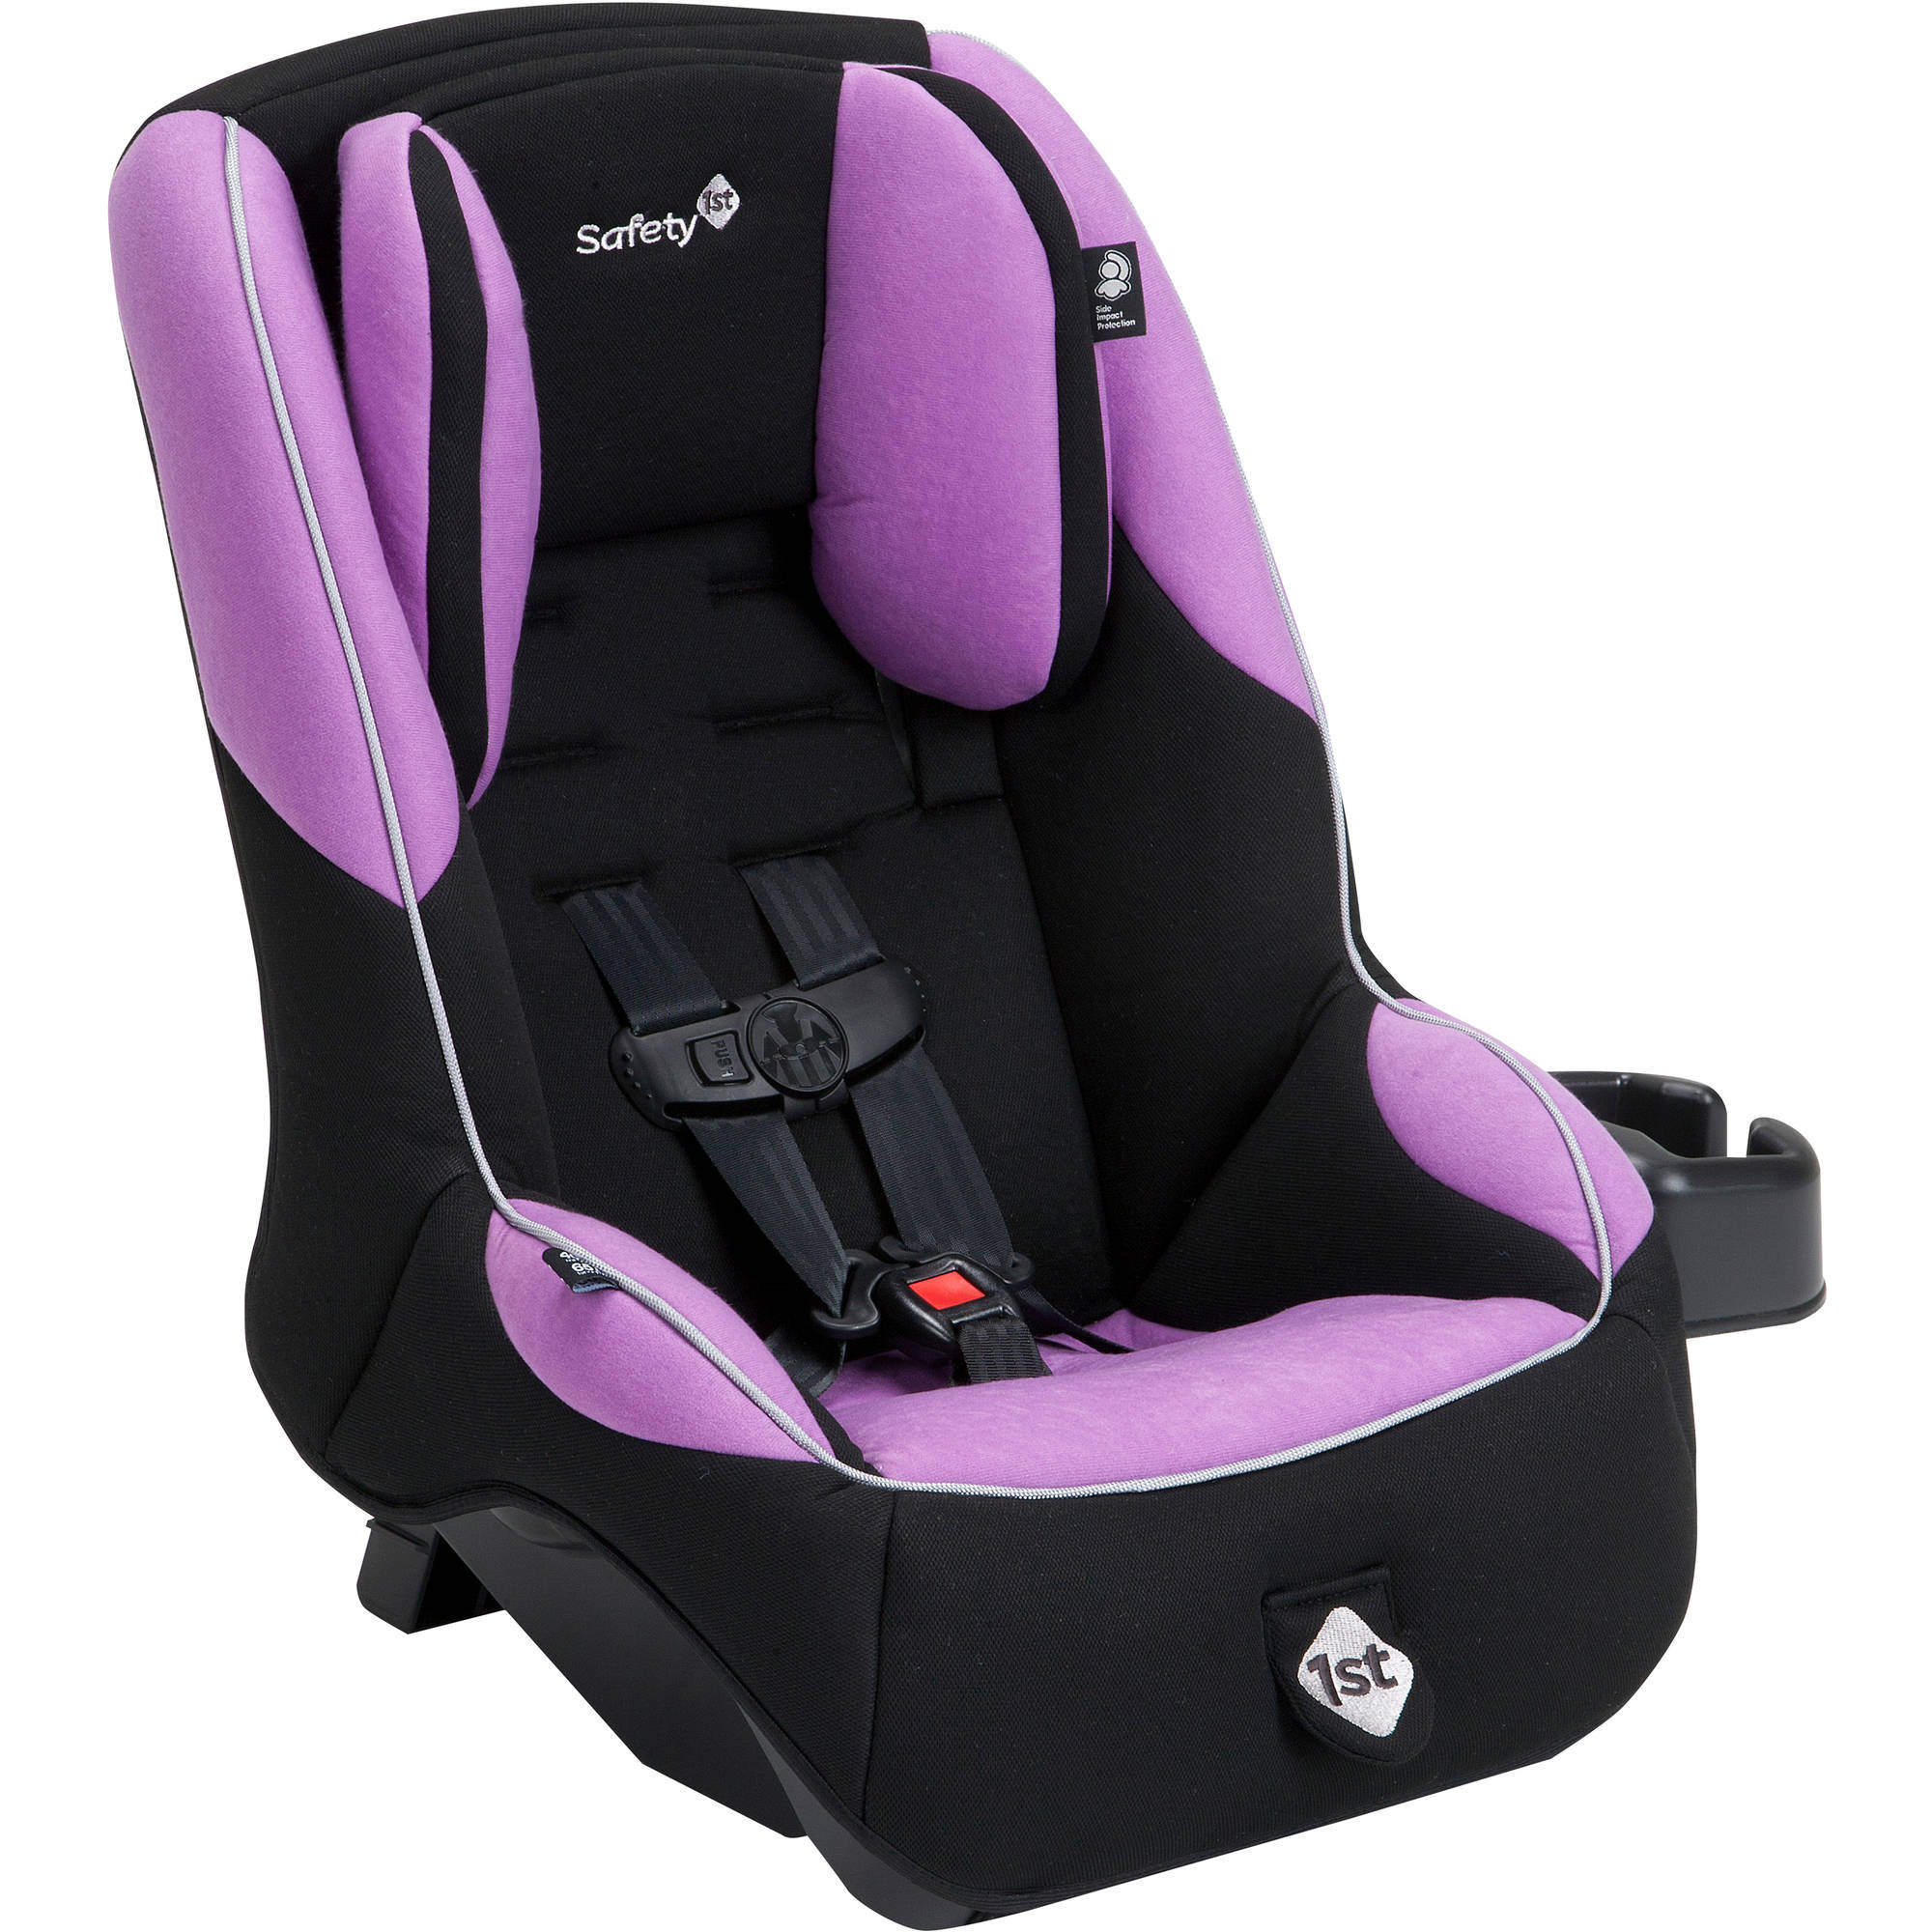 Safety 1st Guide 65 Sport Convertible Car Seat | eBay